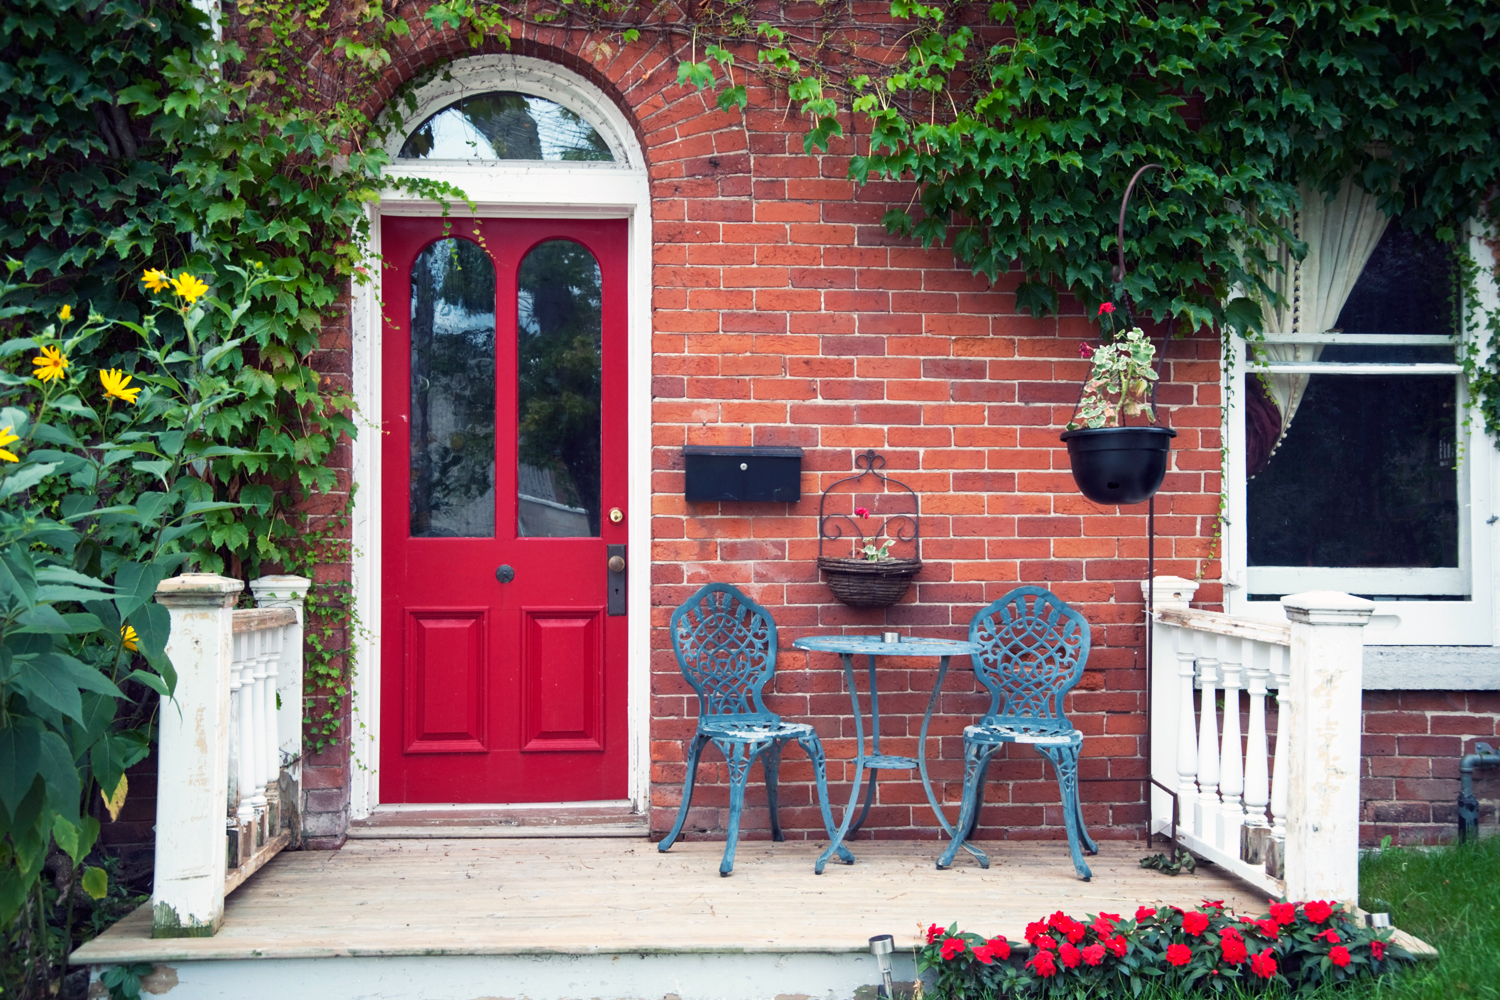 Attirant Creating A Charming Entryway With Red Front Doors